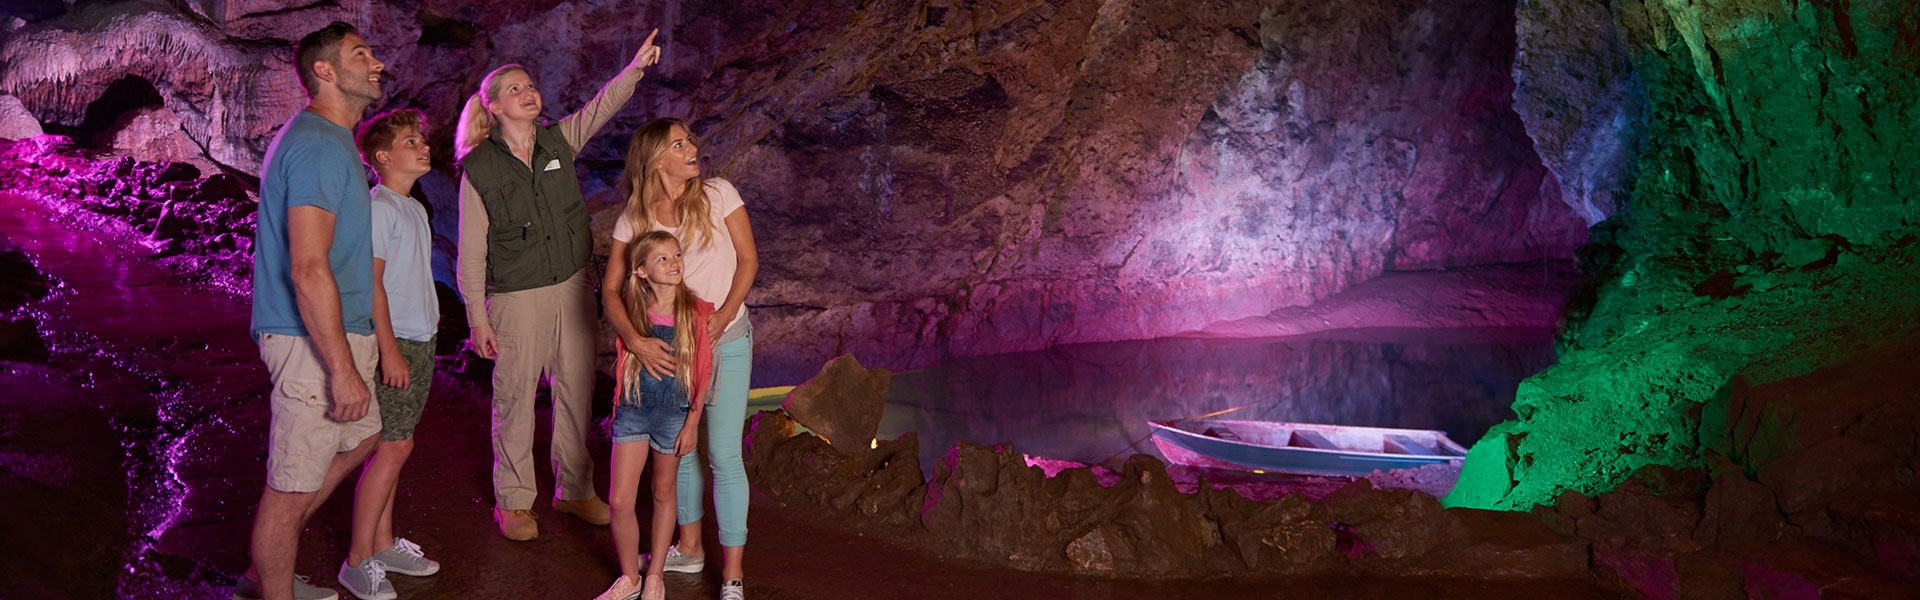 Explore Caverns, Rivers, and Waterfalls